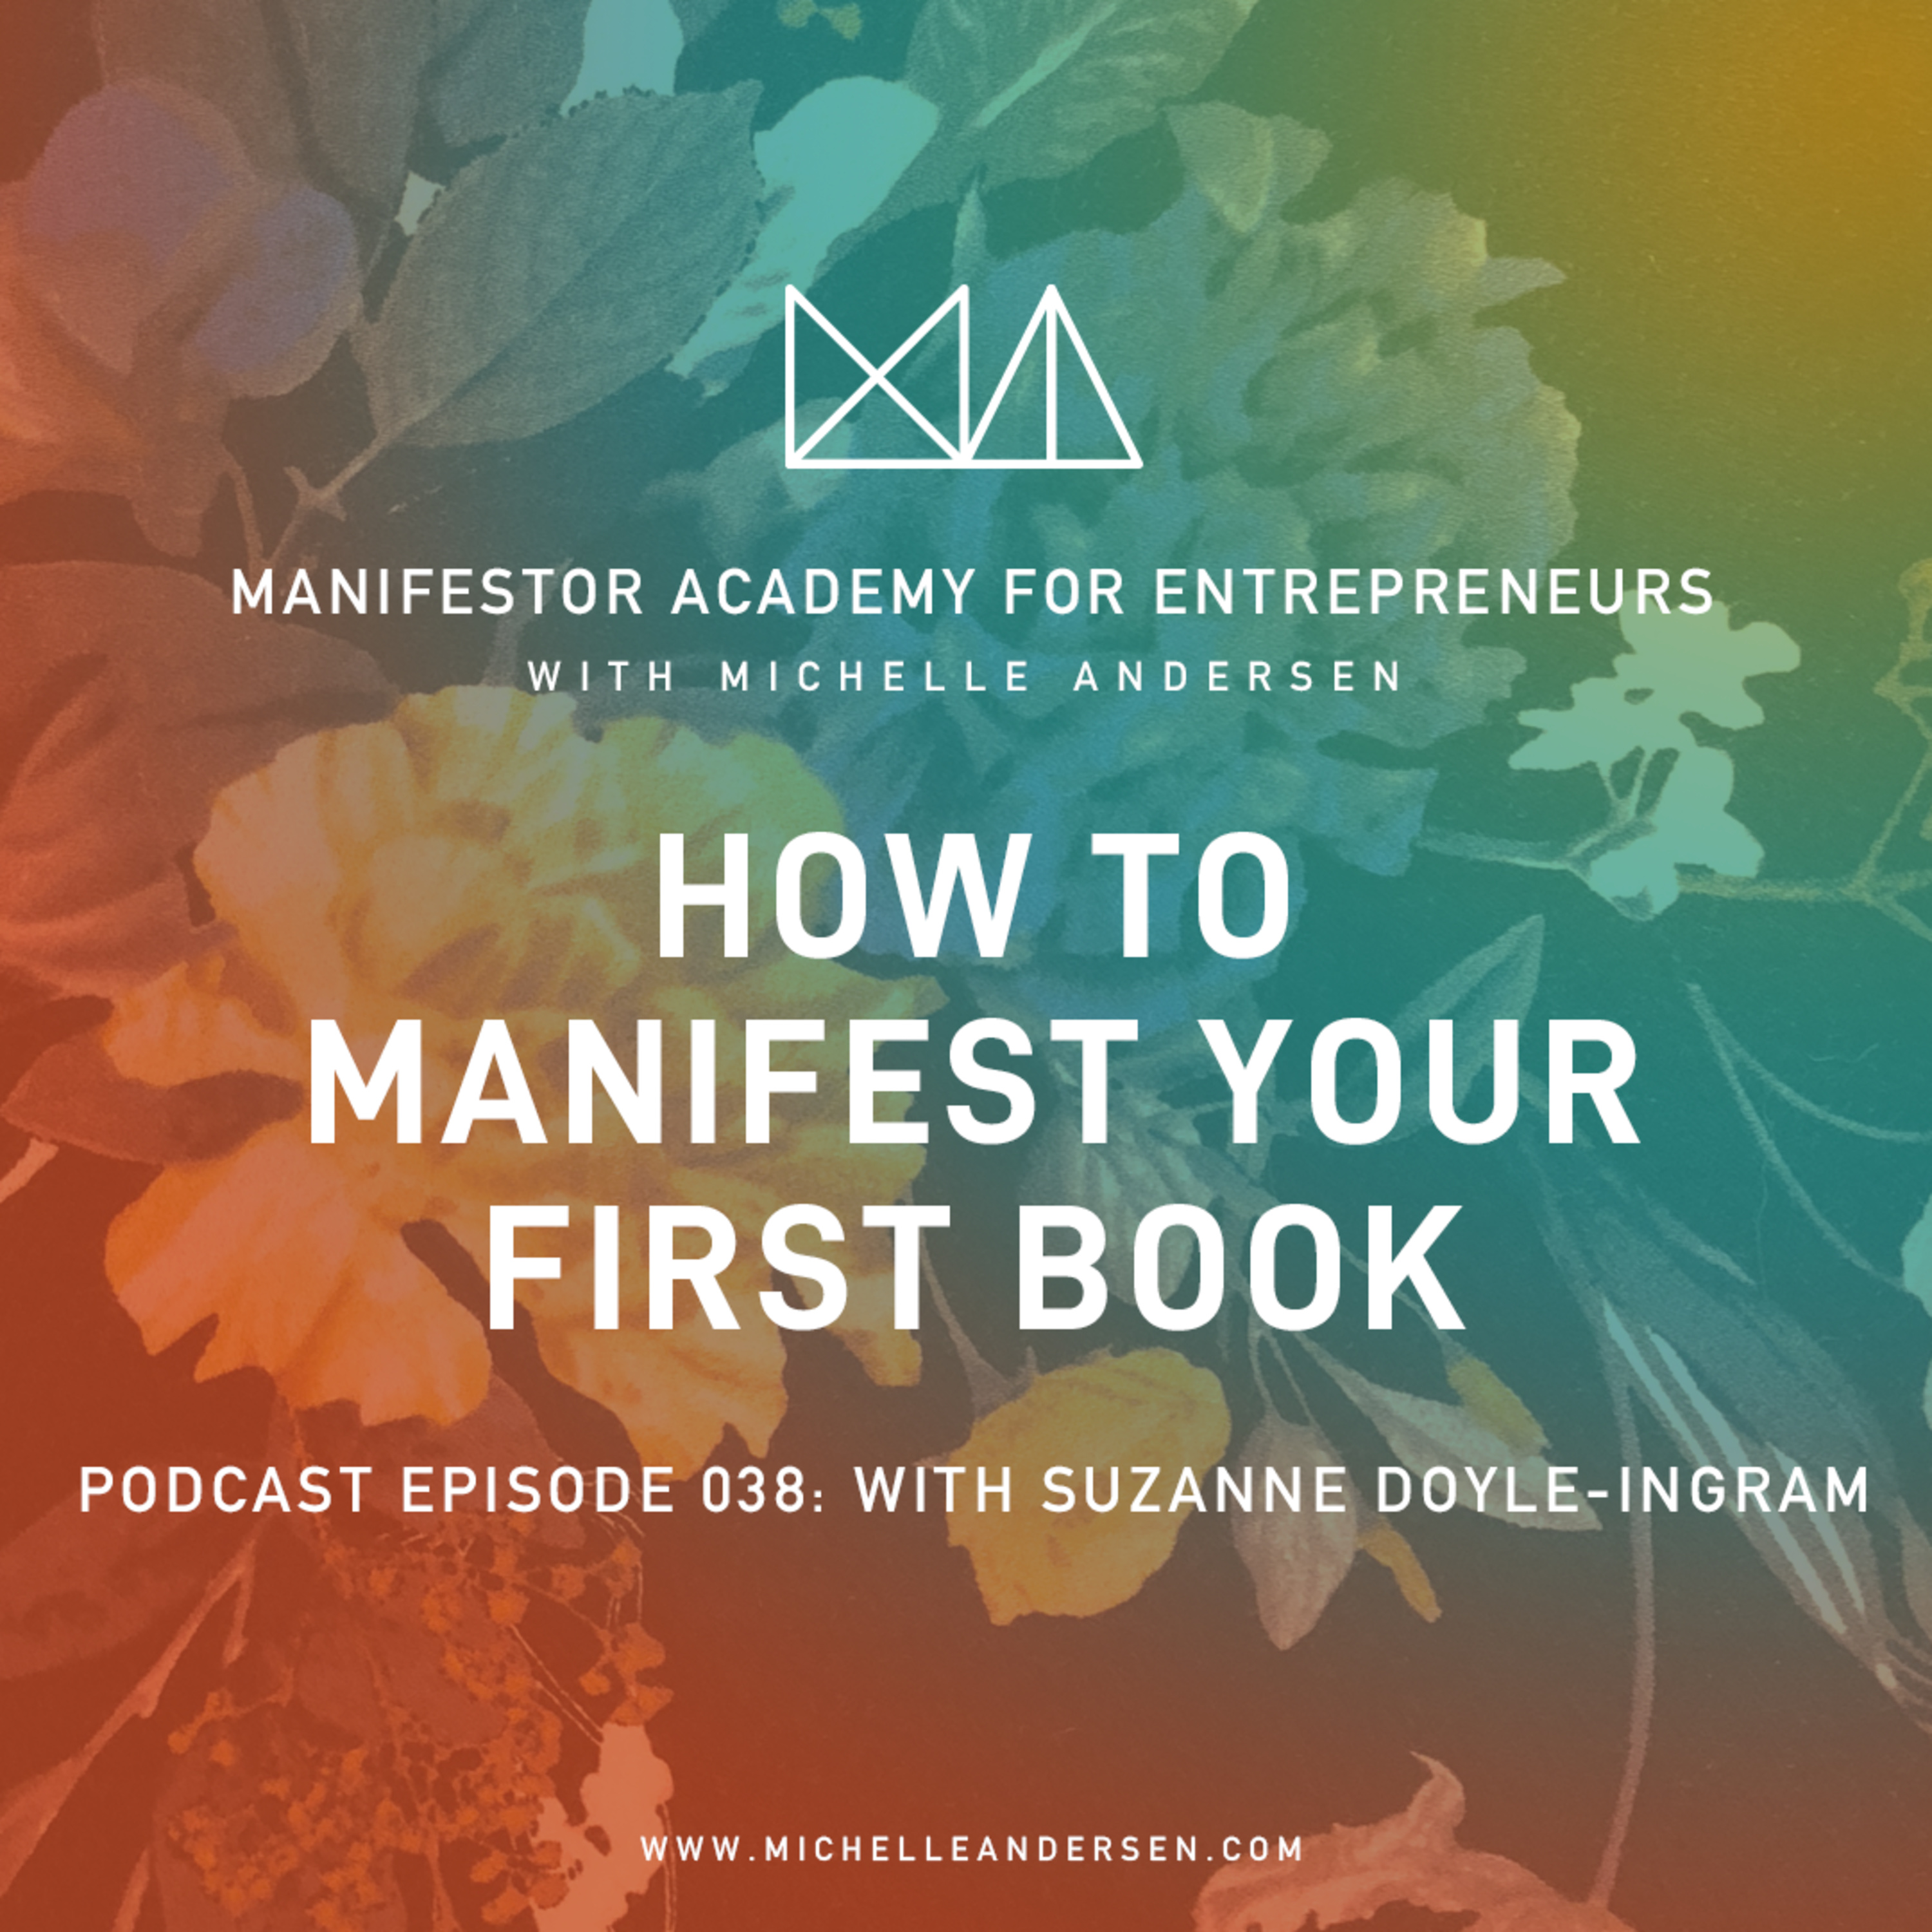 Suzanne Doyle Ingram on How to Manifest Your First Book